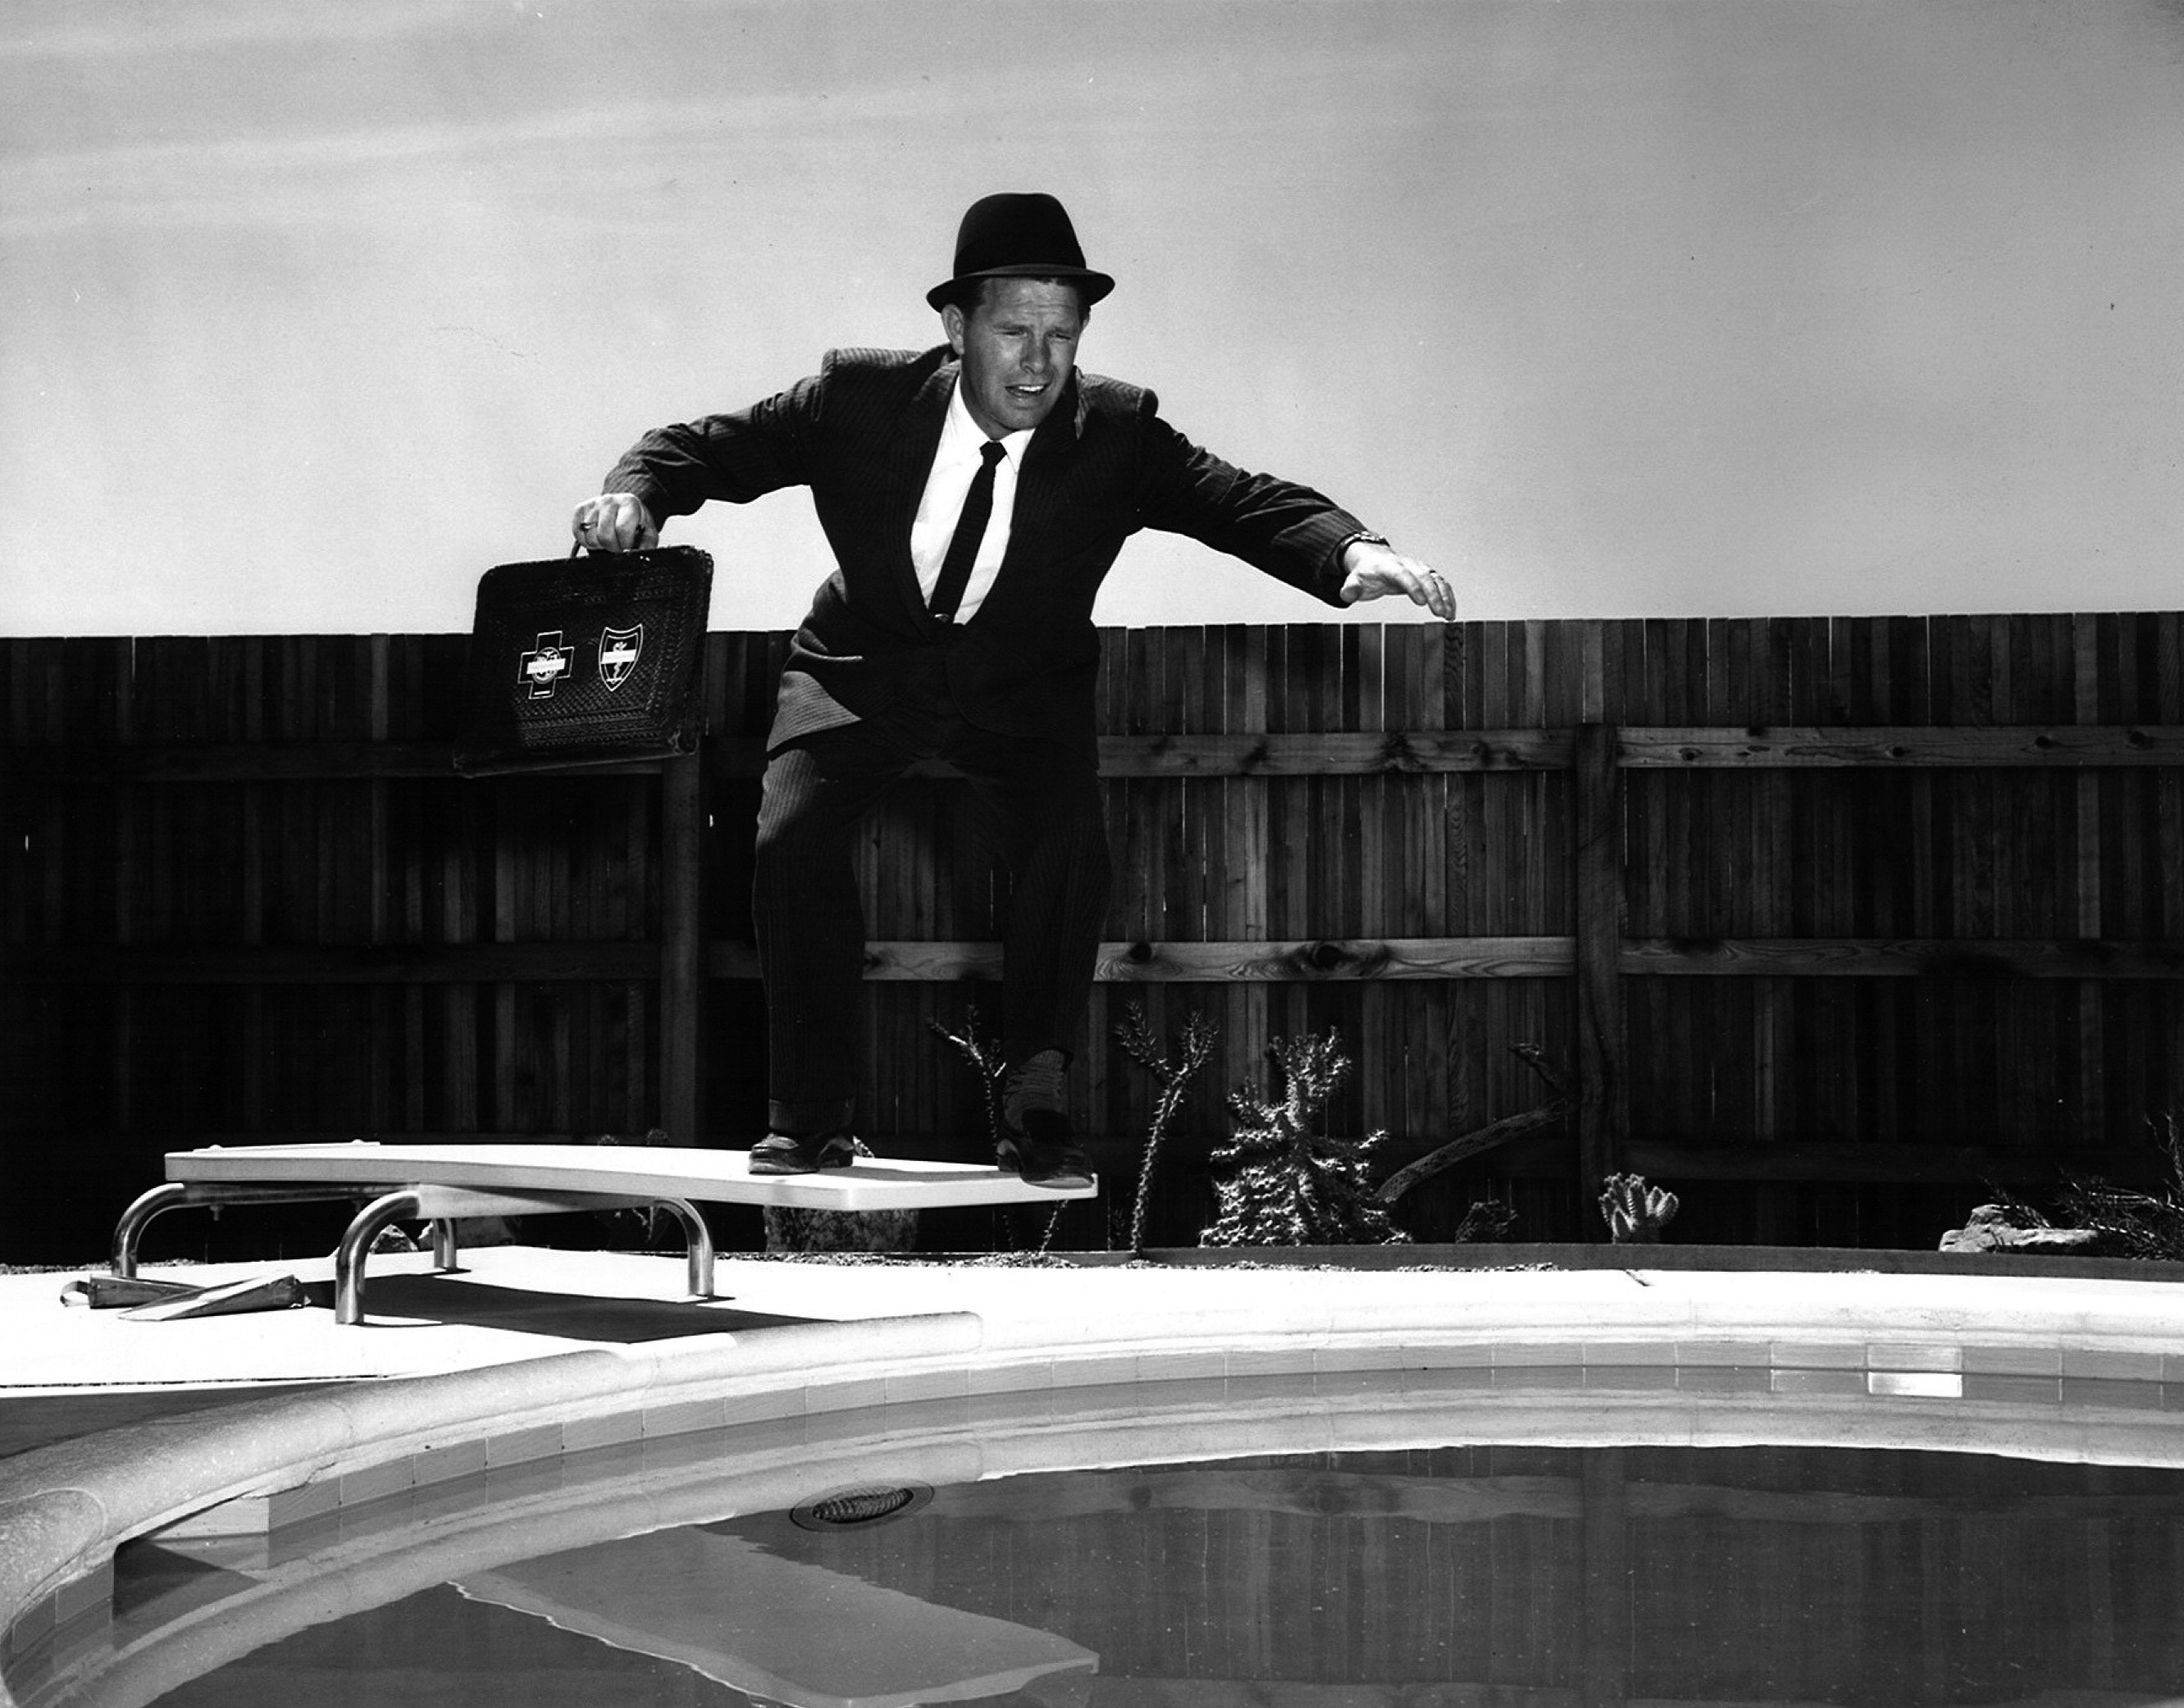 Businessman jumping in a pool